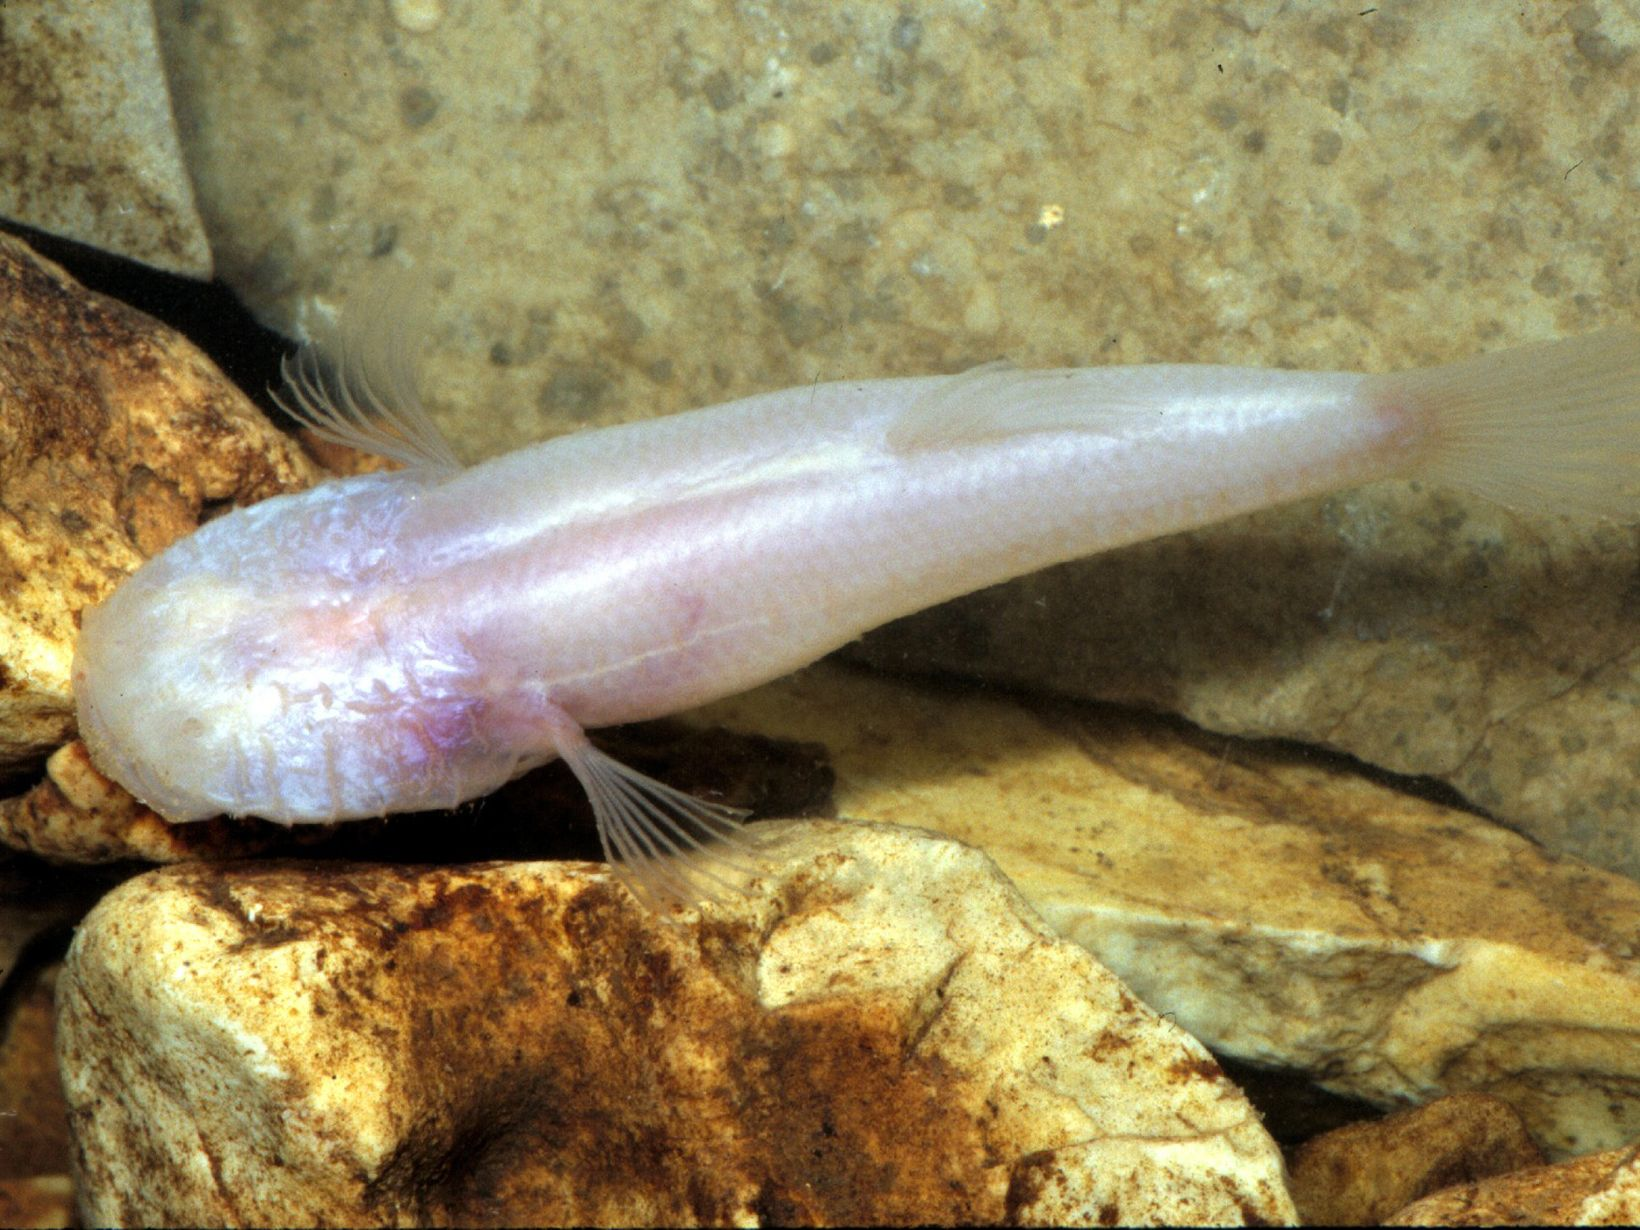 Cavefish swimming in clear water.